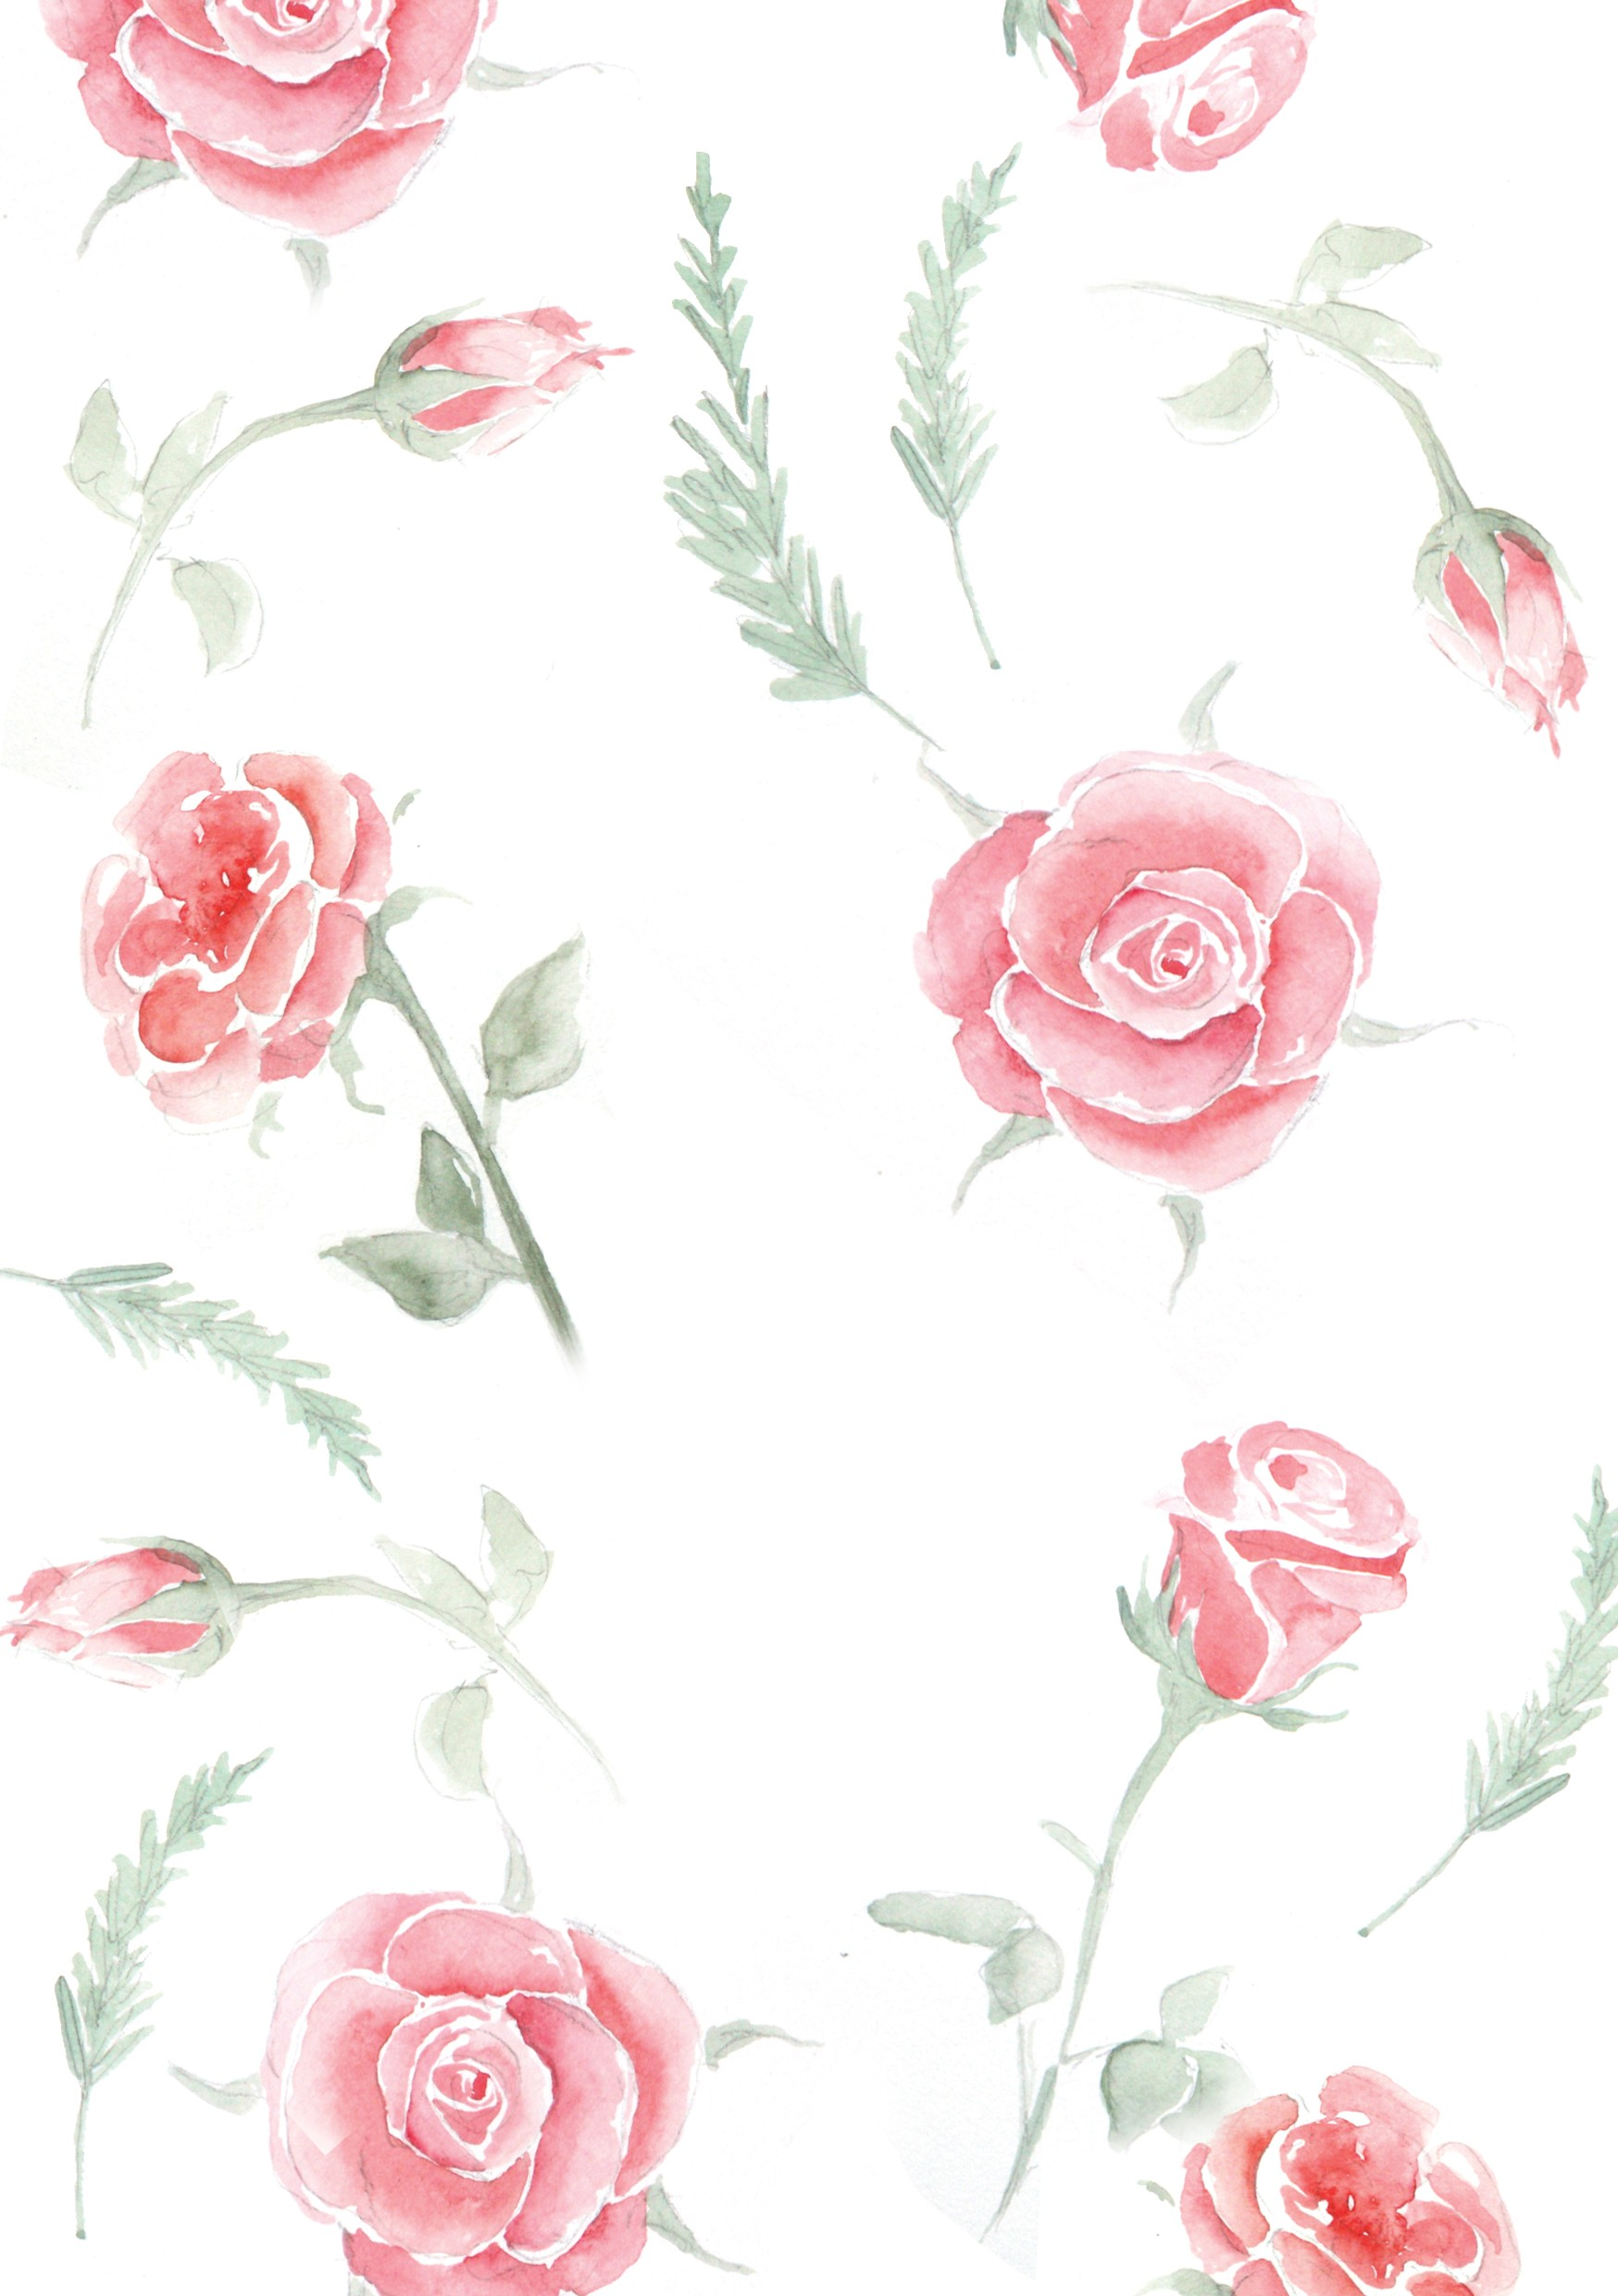 Cute Floral Backgrounds Tumblr